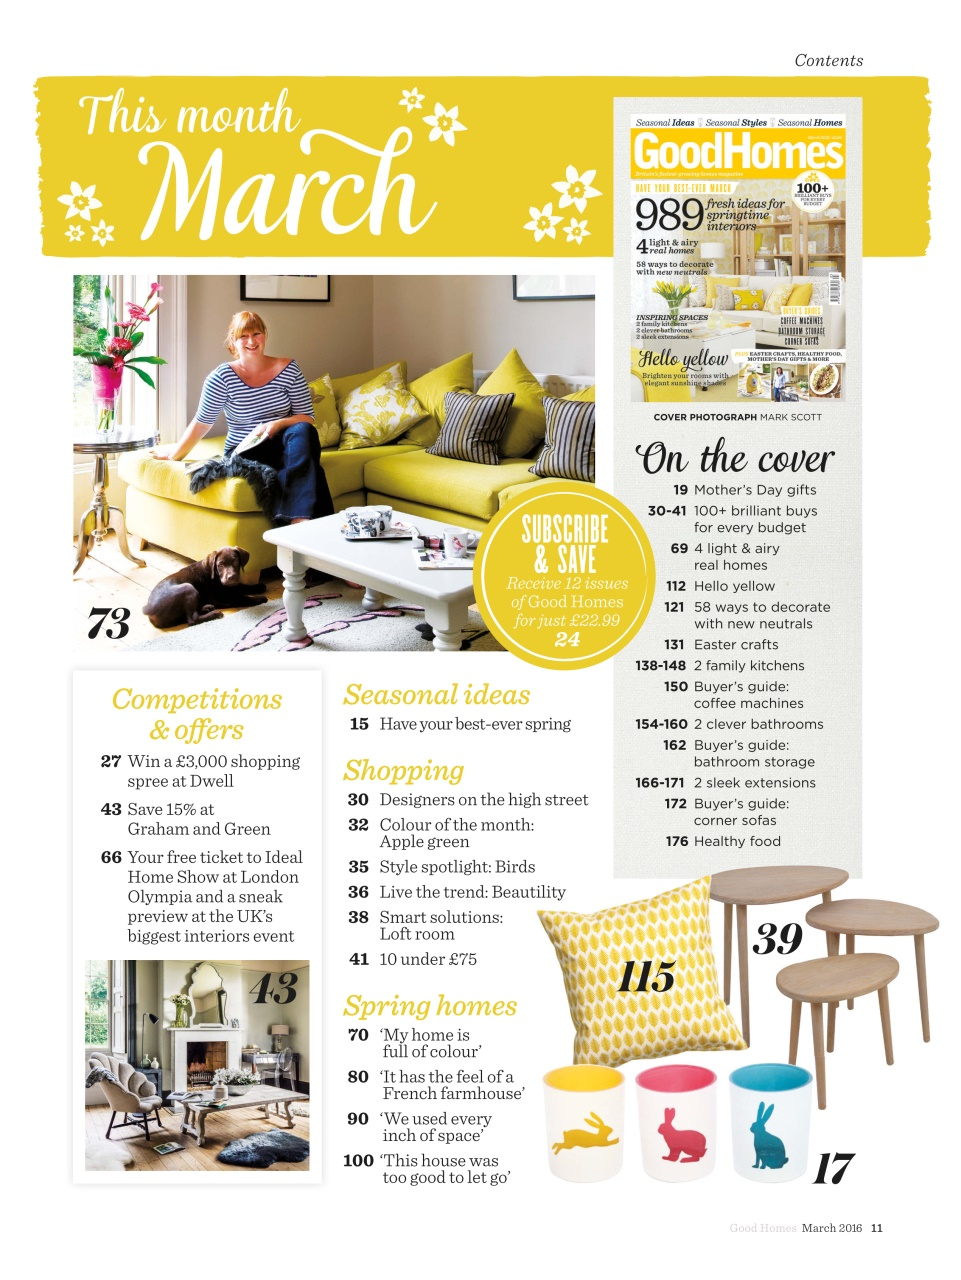 Good Homes Magazine Subscription Offers